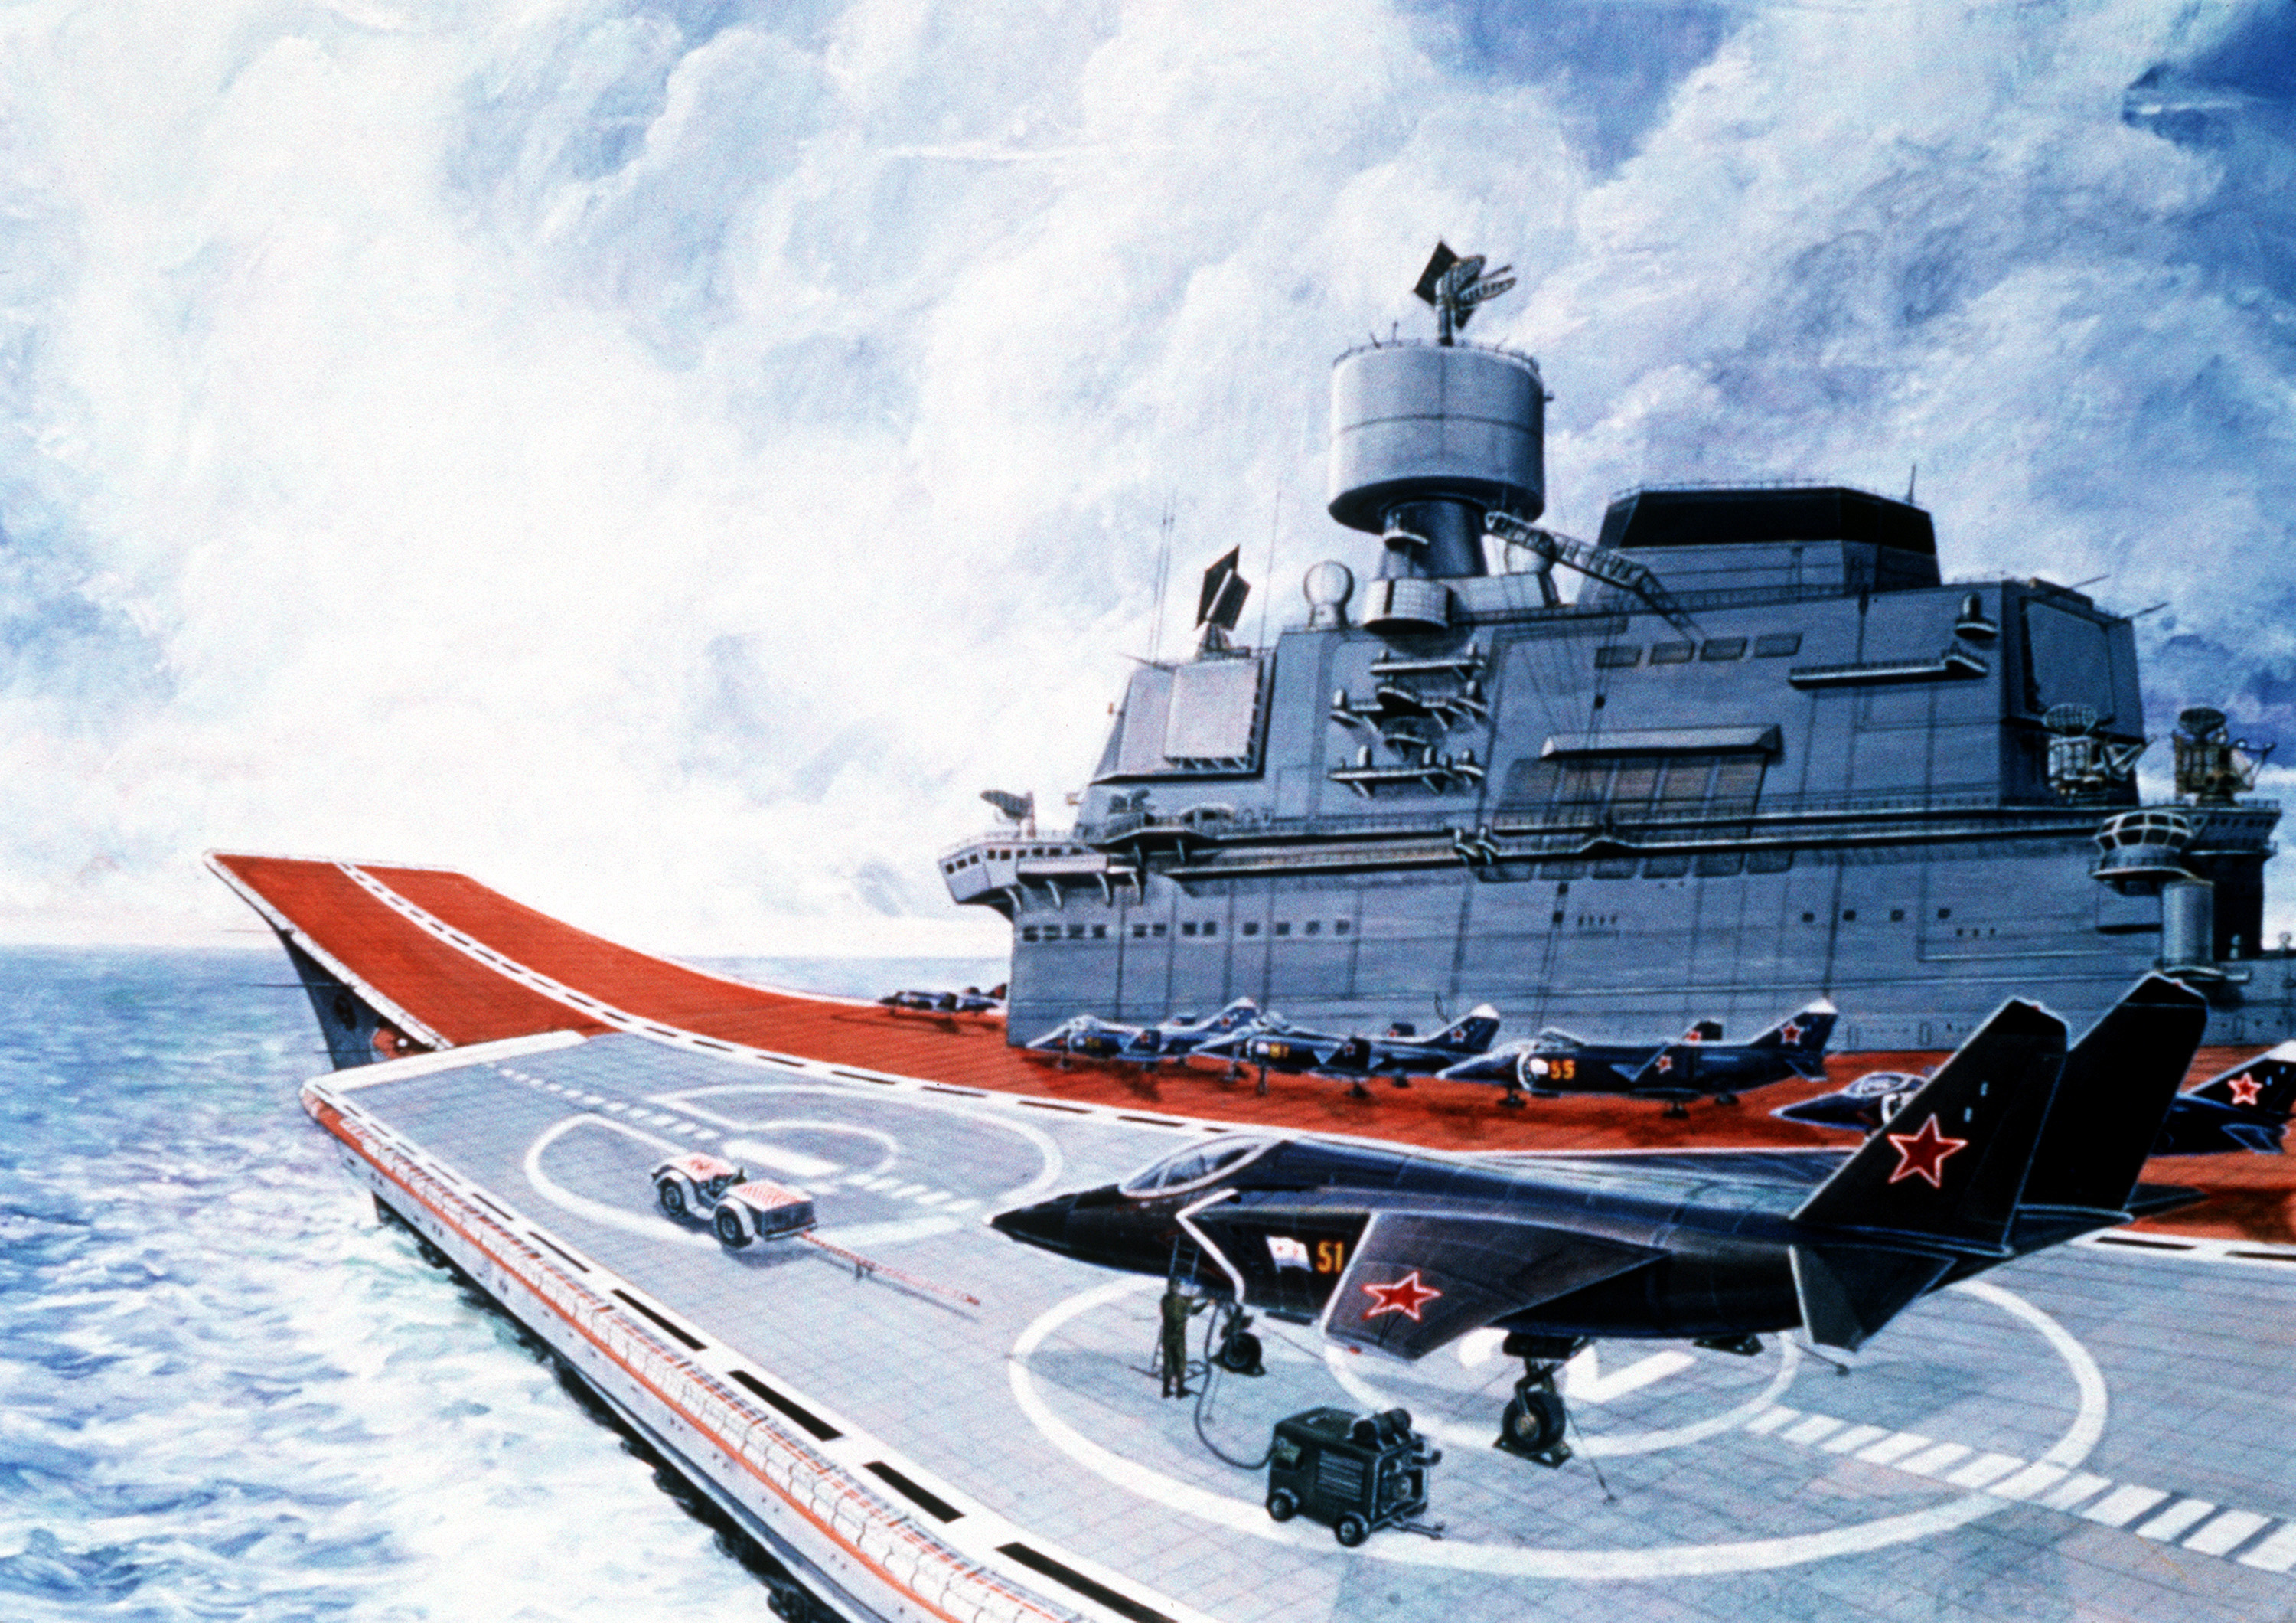 Did This Old Russian Jet Help Inspire the F-35?